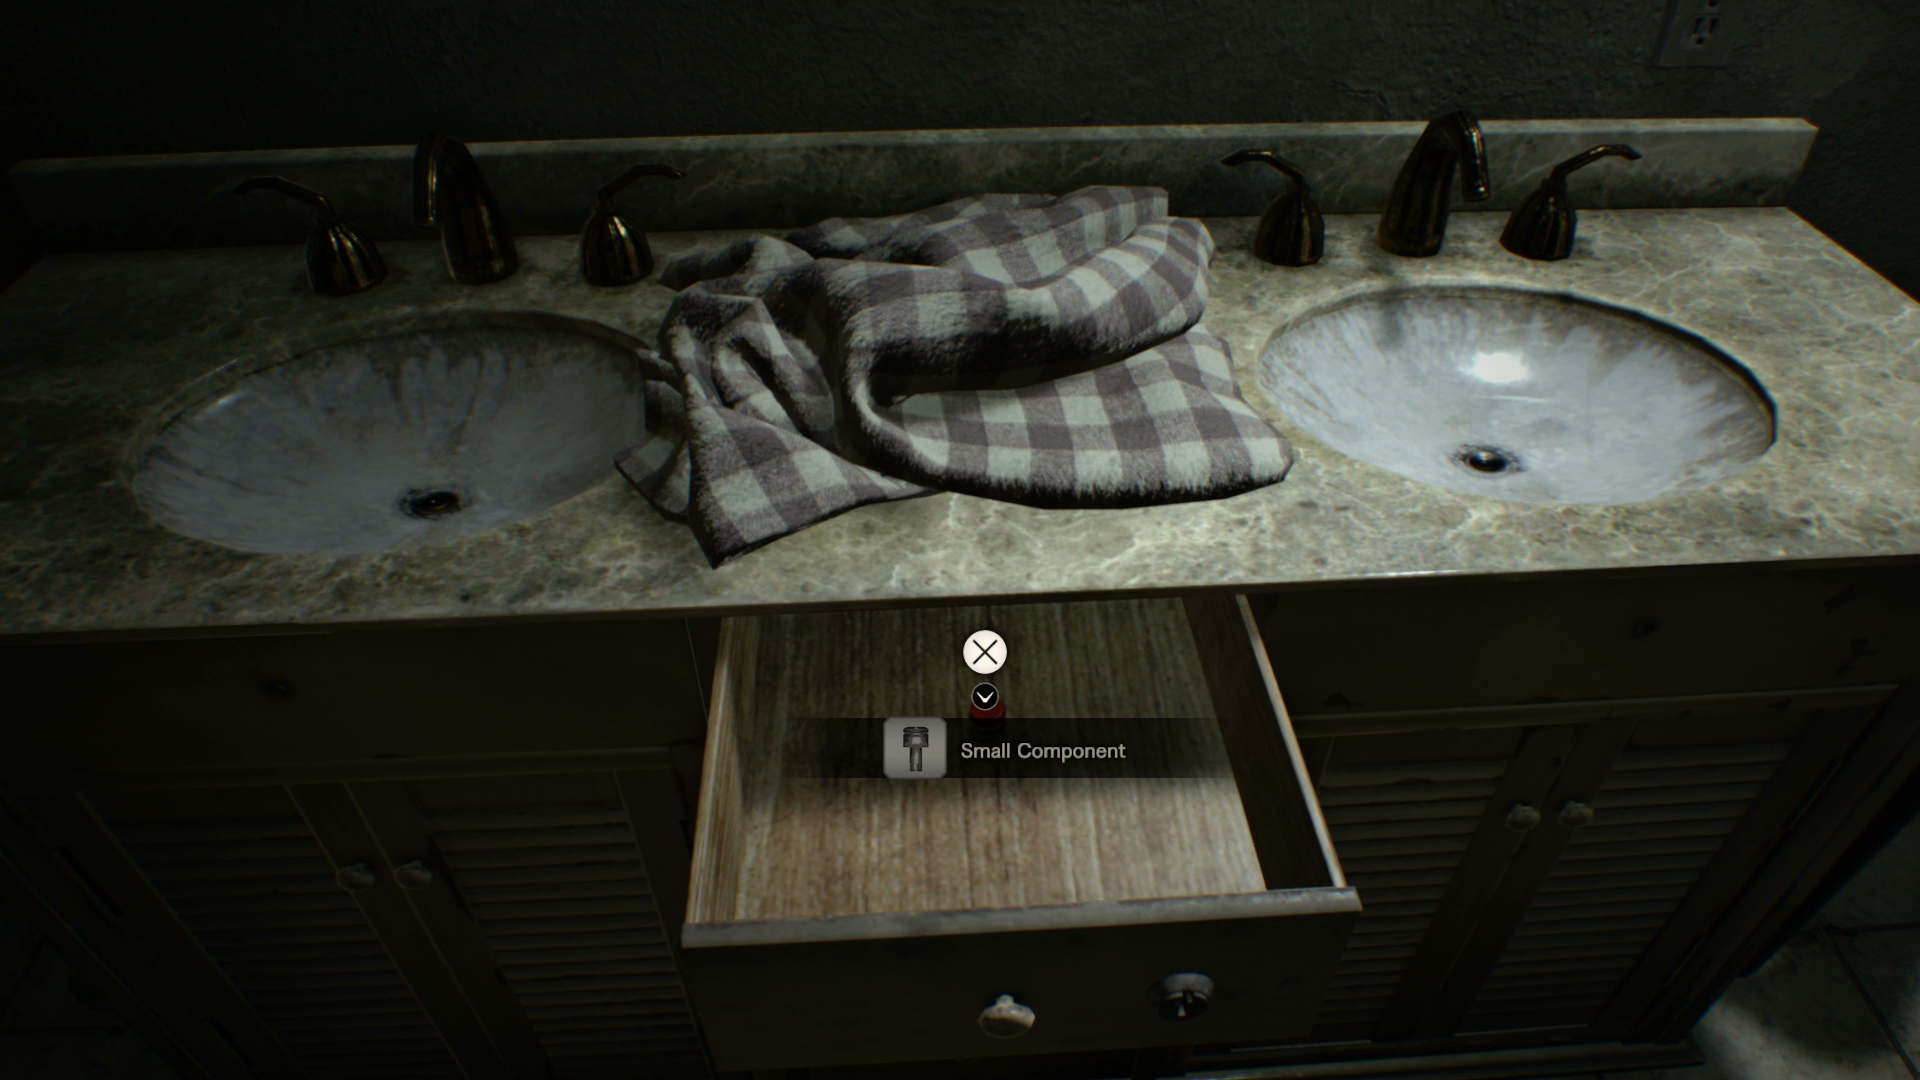 Resident Evil 7 Banned Footage DLC Guide: How to Beat Daughters and